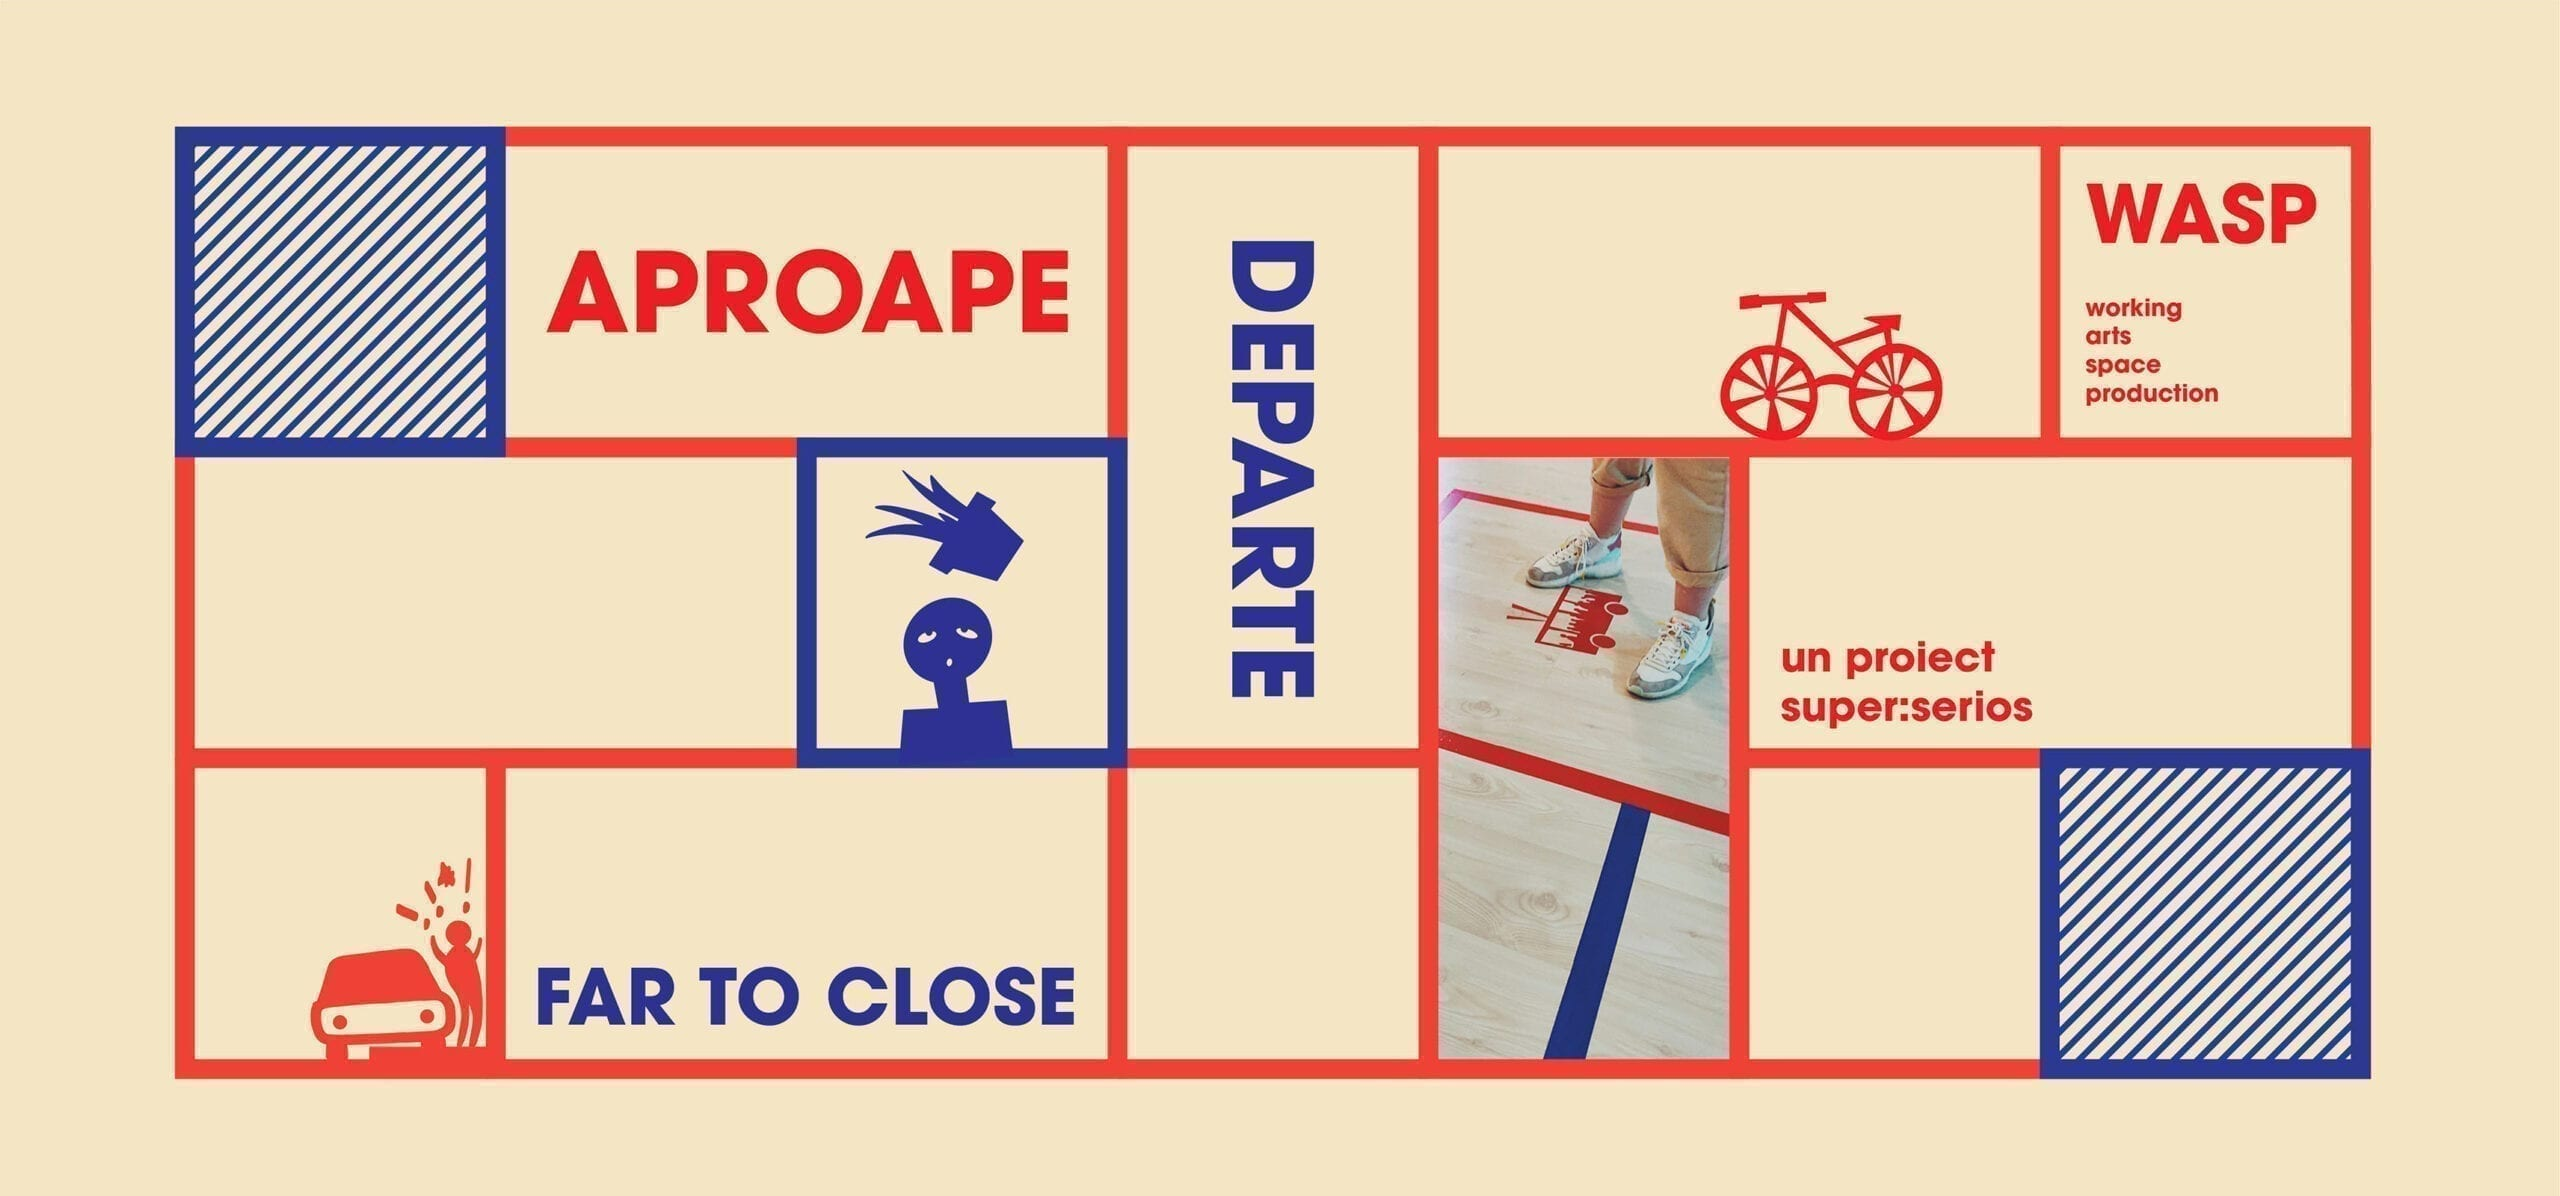 Super:Serios 'far to close' / 'aproape departe' la WASP (Working Art Space and Production)